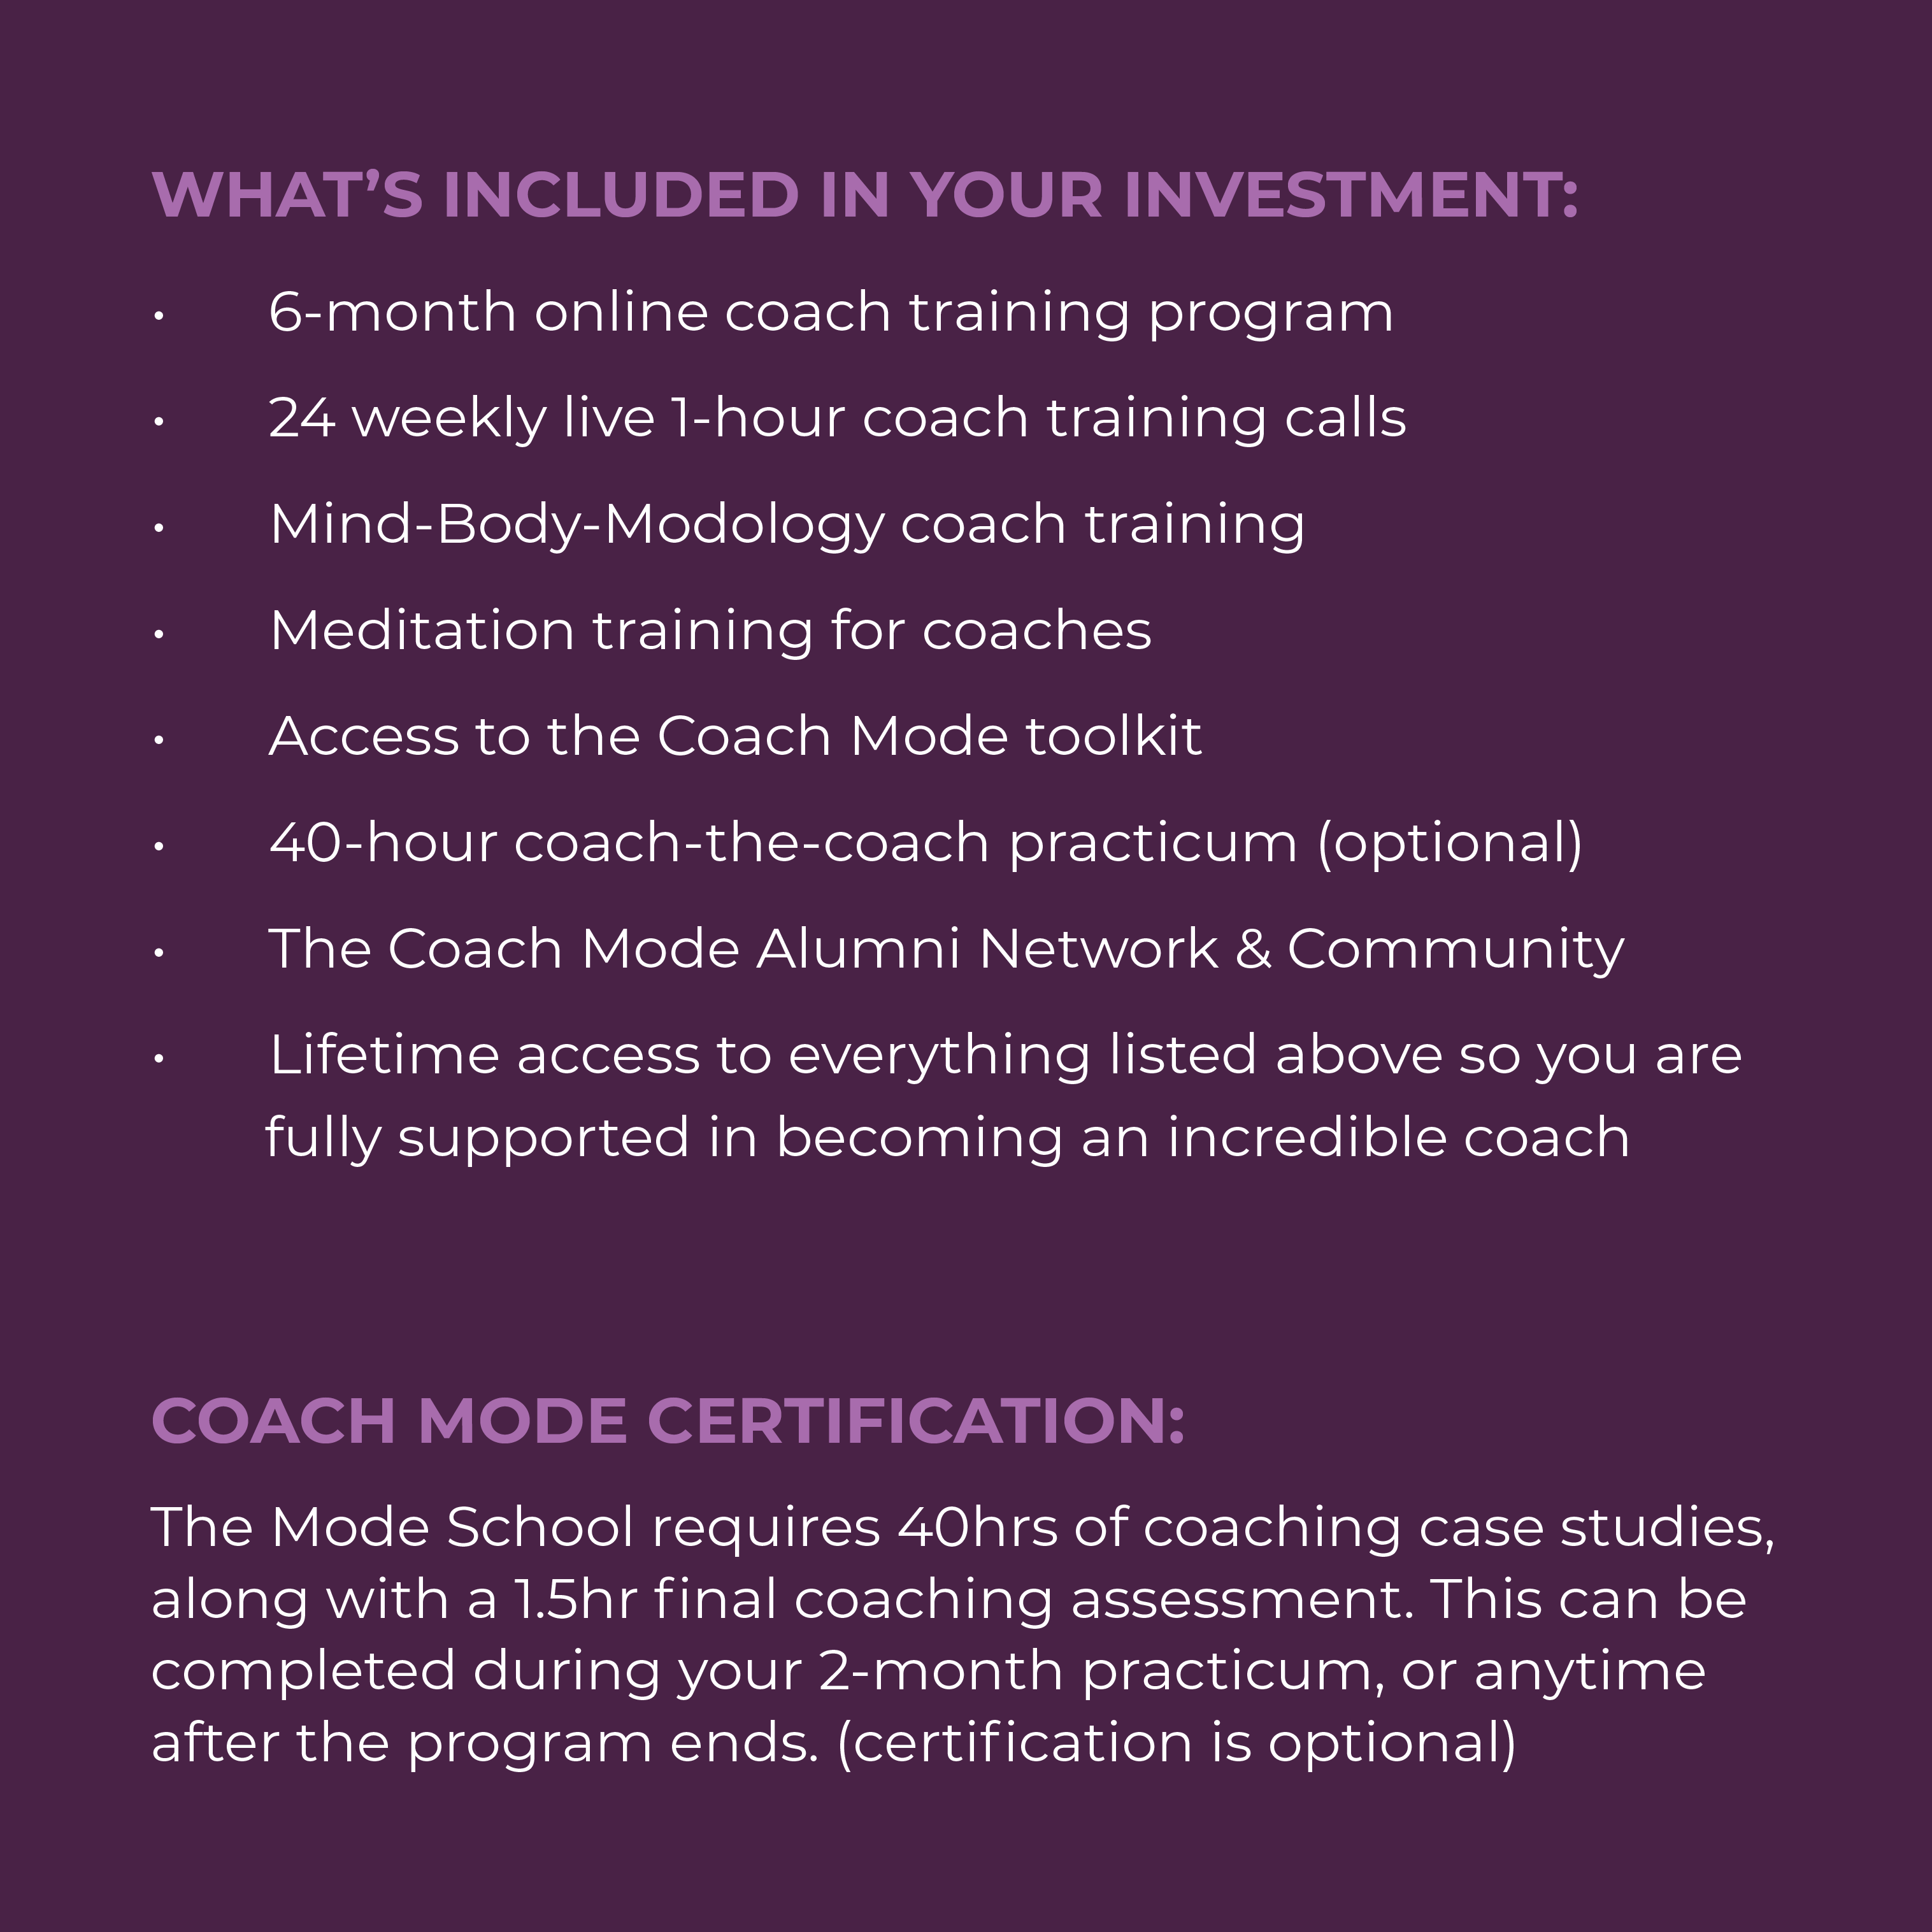 What is included in your investment and the cost of the program